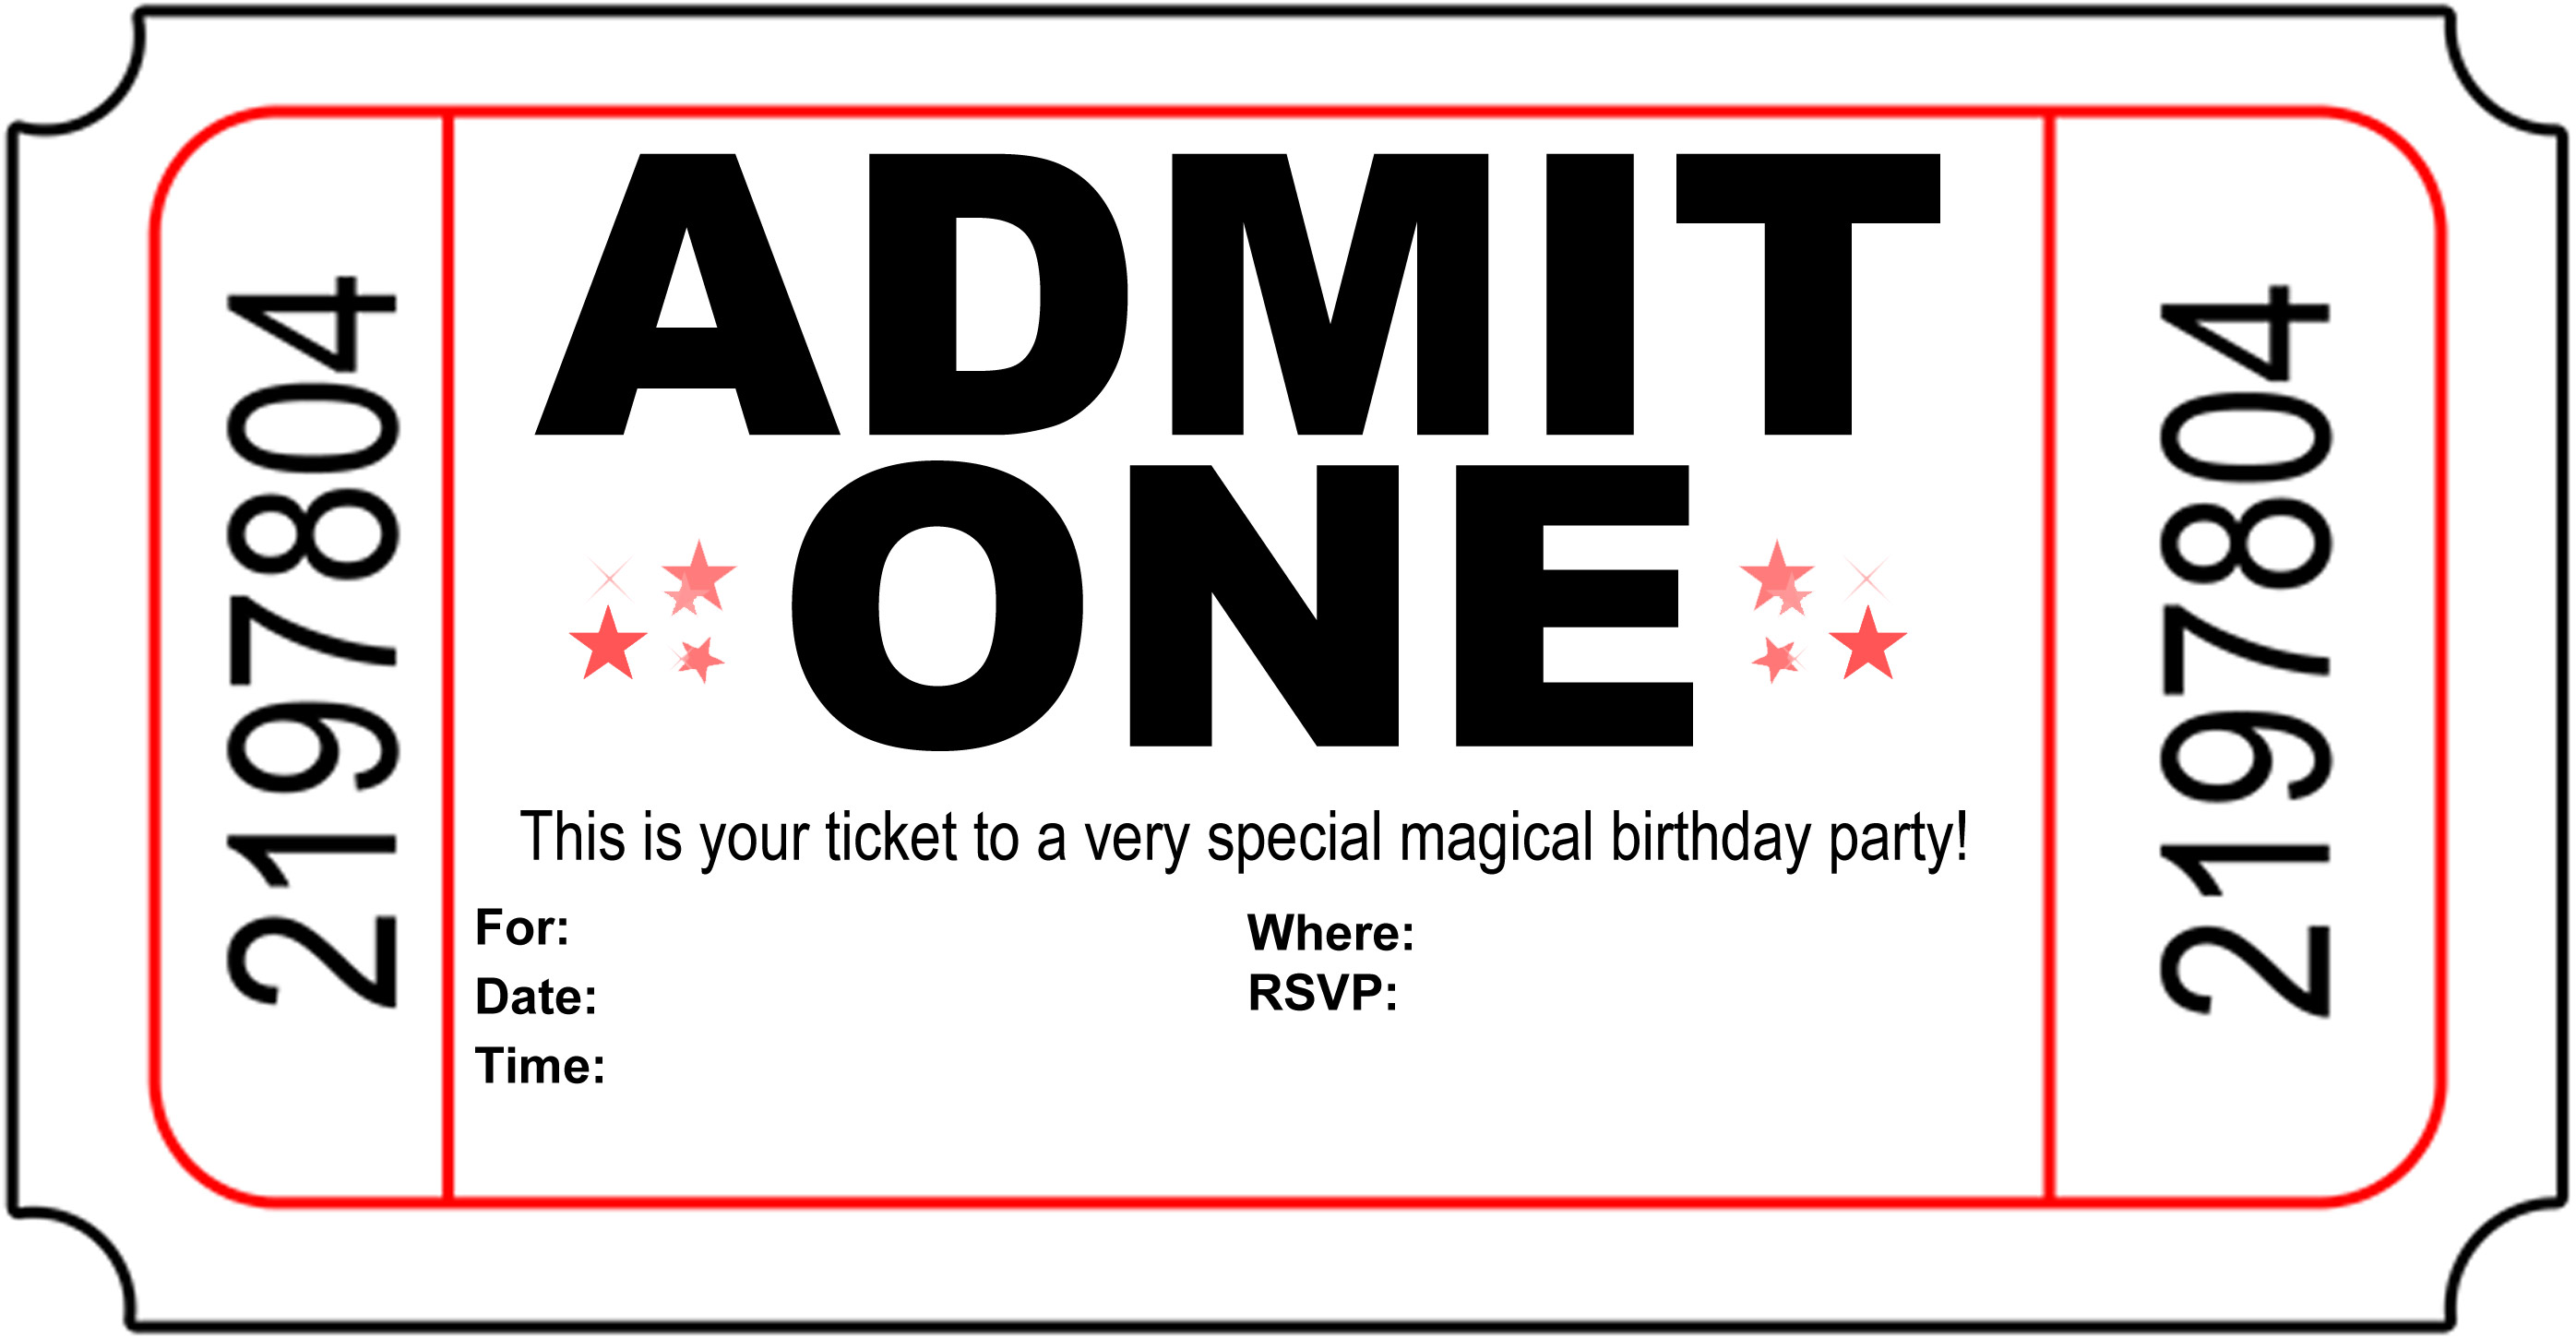 Free Printable Birthday Party Invitations Kansas Magician – Printable Ticket Invitations